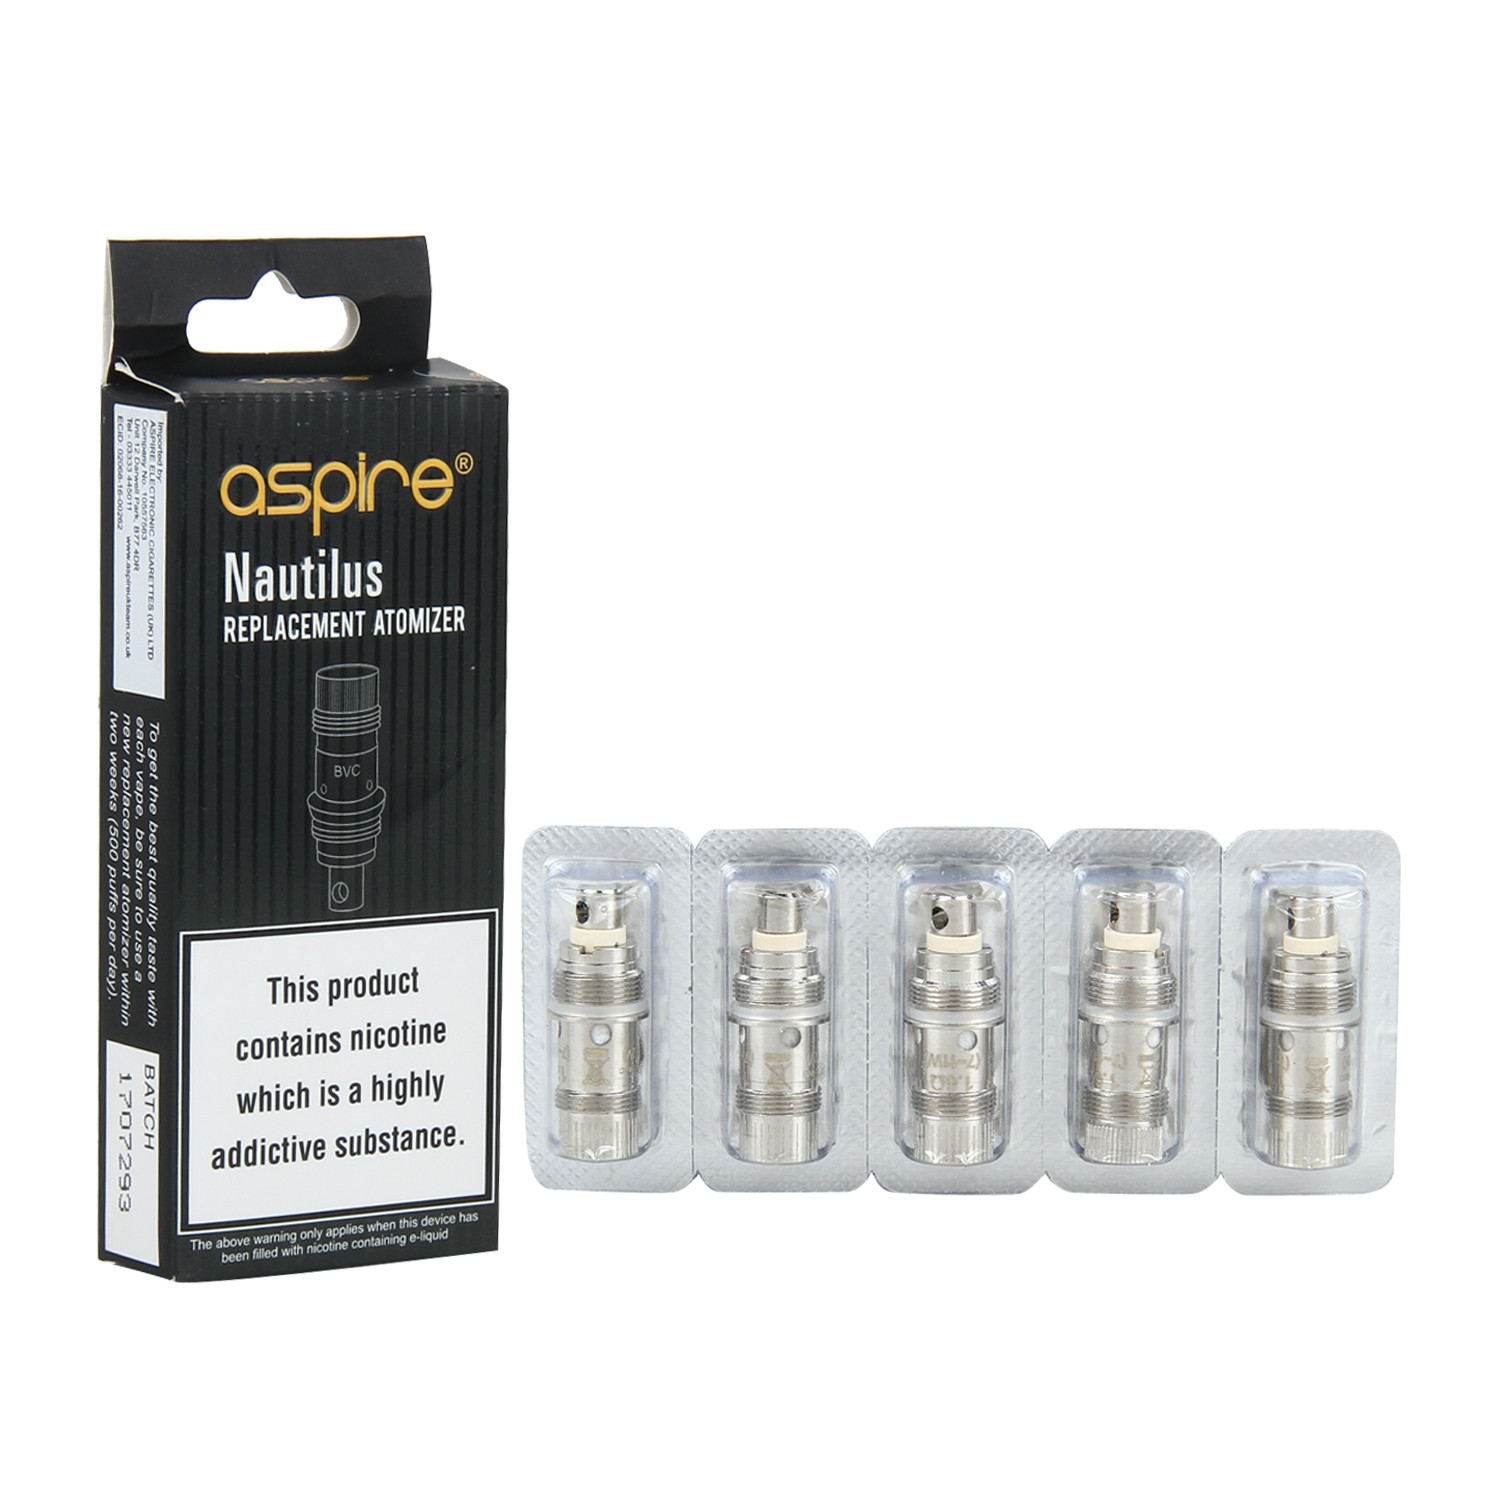 Nautilus Replacement Atomizer | Coil